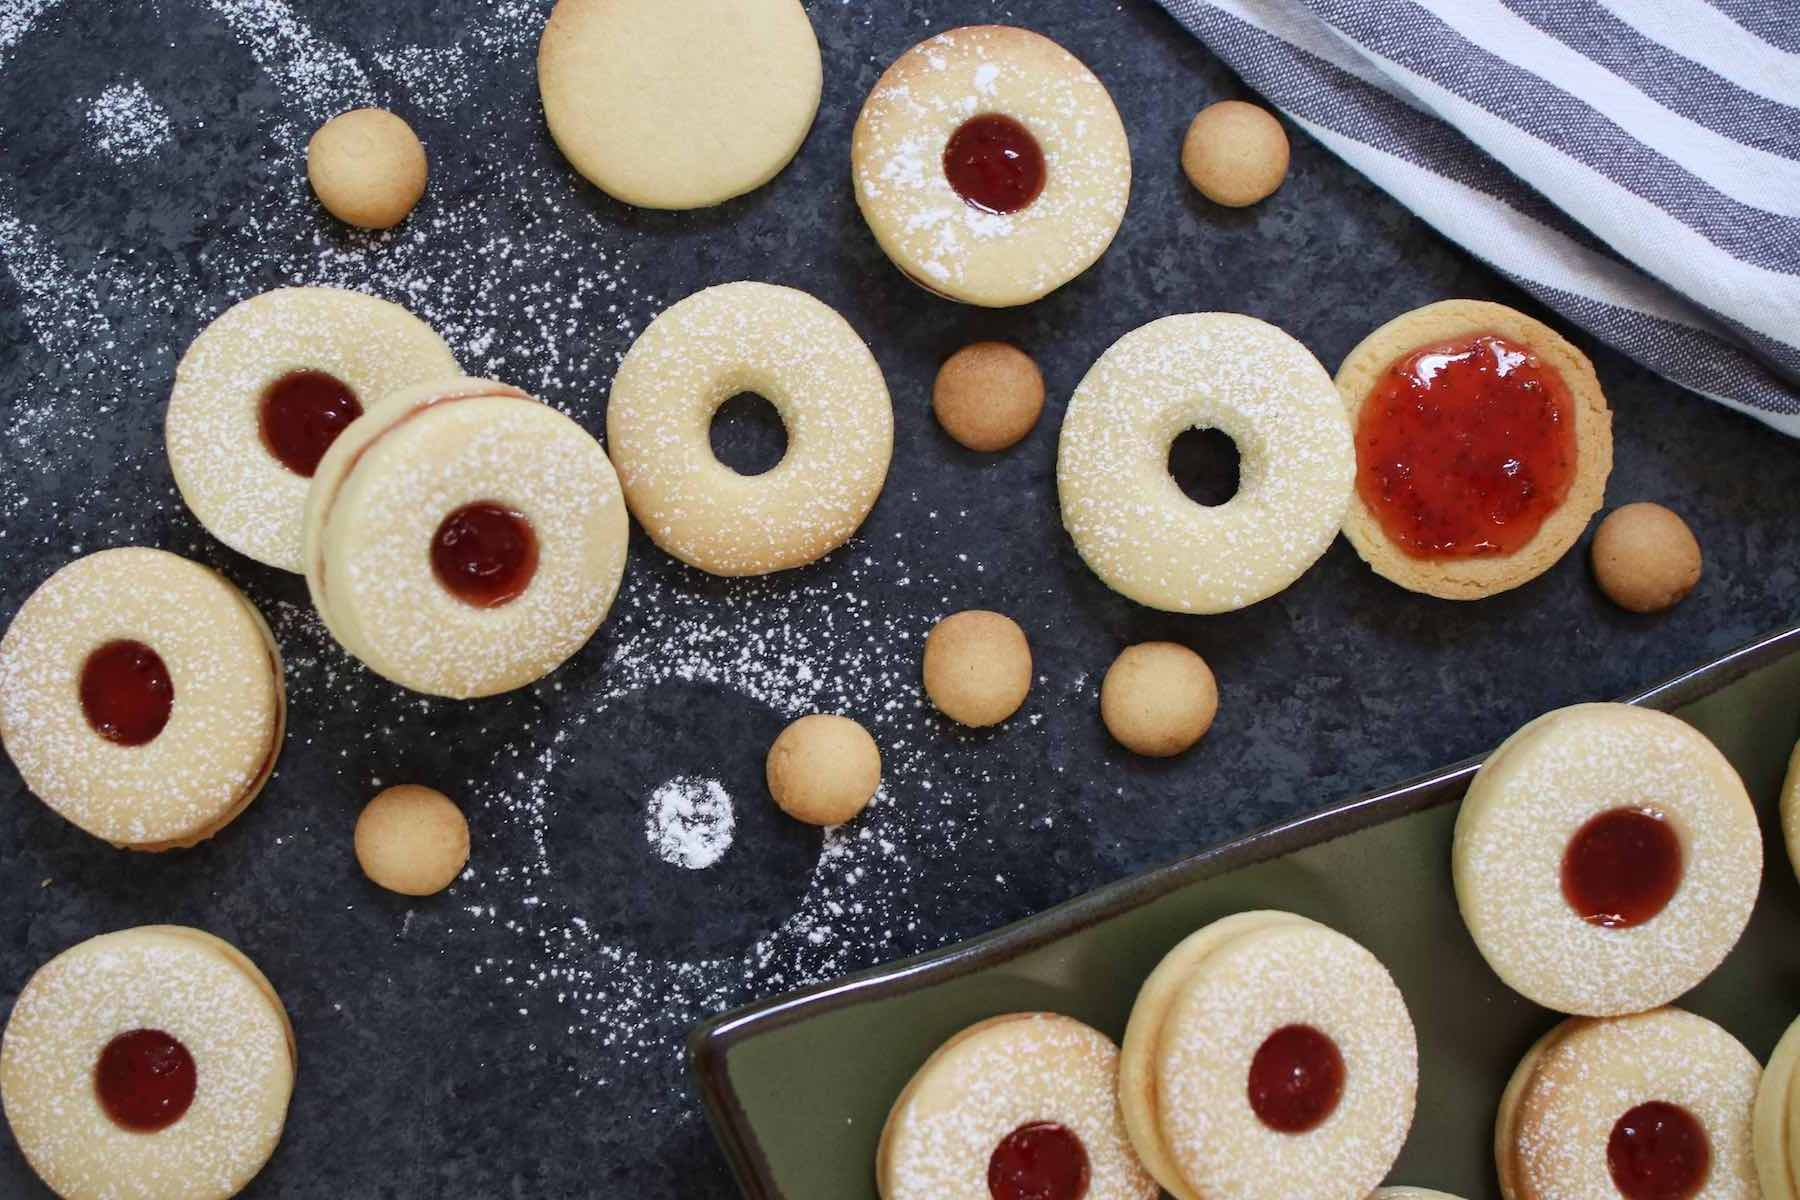 Assembling Jammie Dodgers after the top layers were dusted with icing sugar.